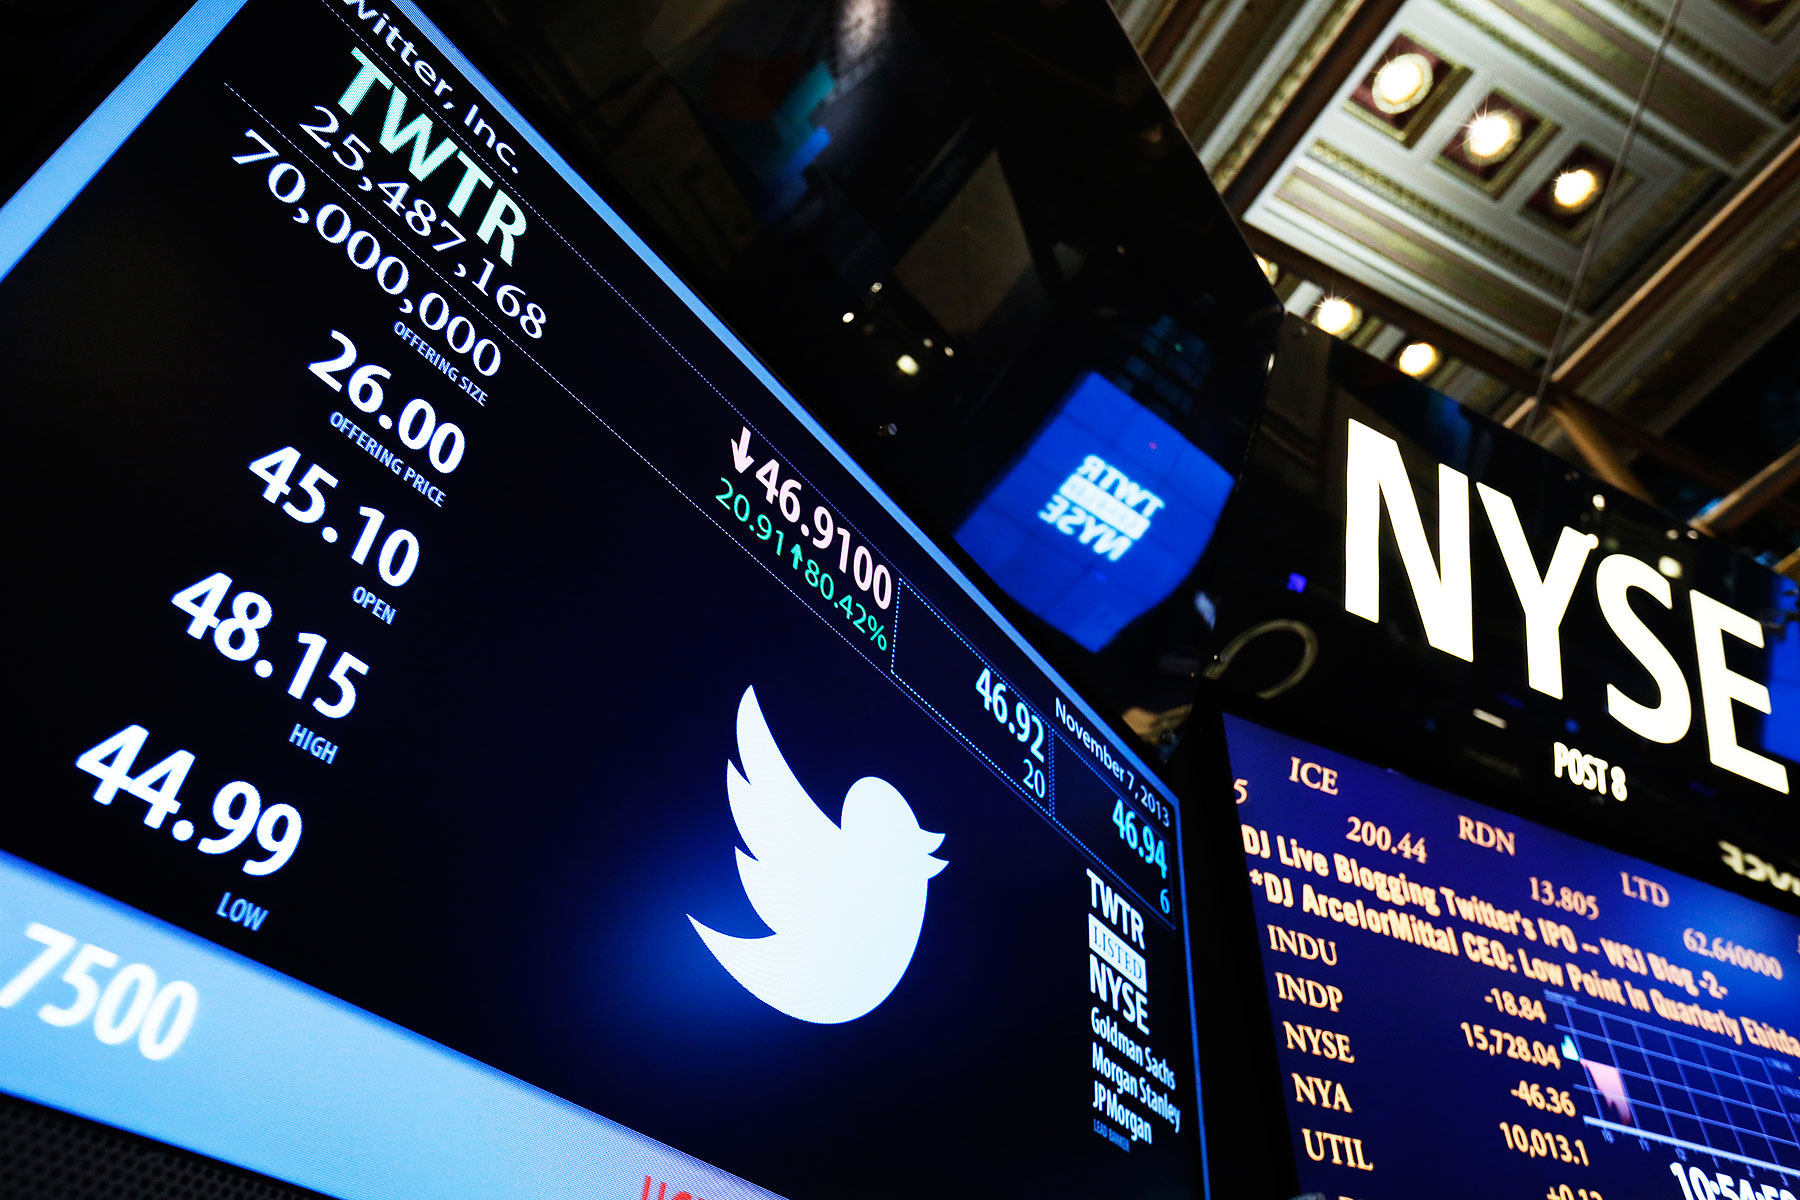 A New York Stock Exchange screen shows the results of the Twitter Inc. IPO in New York, Nov. 7, 2013